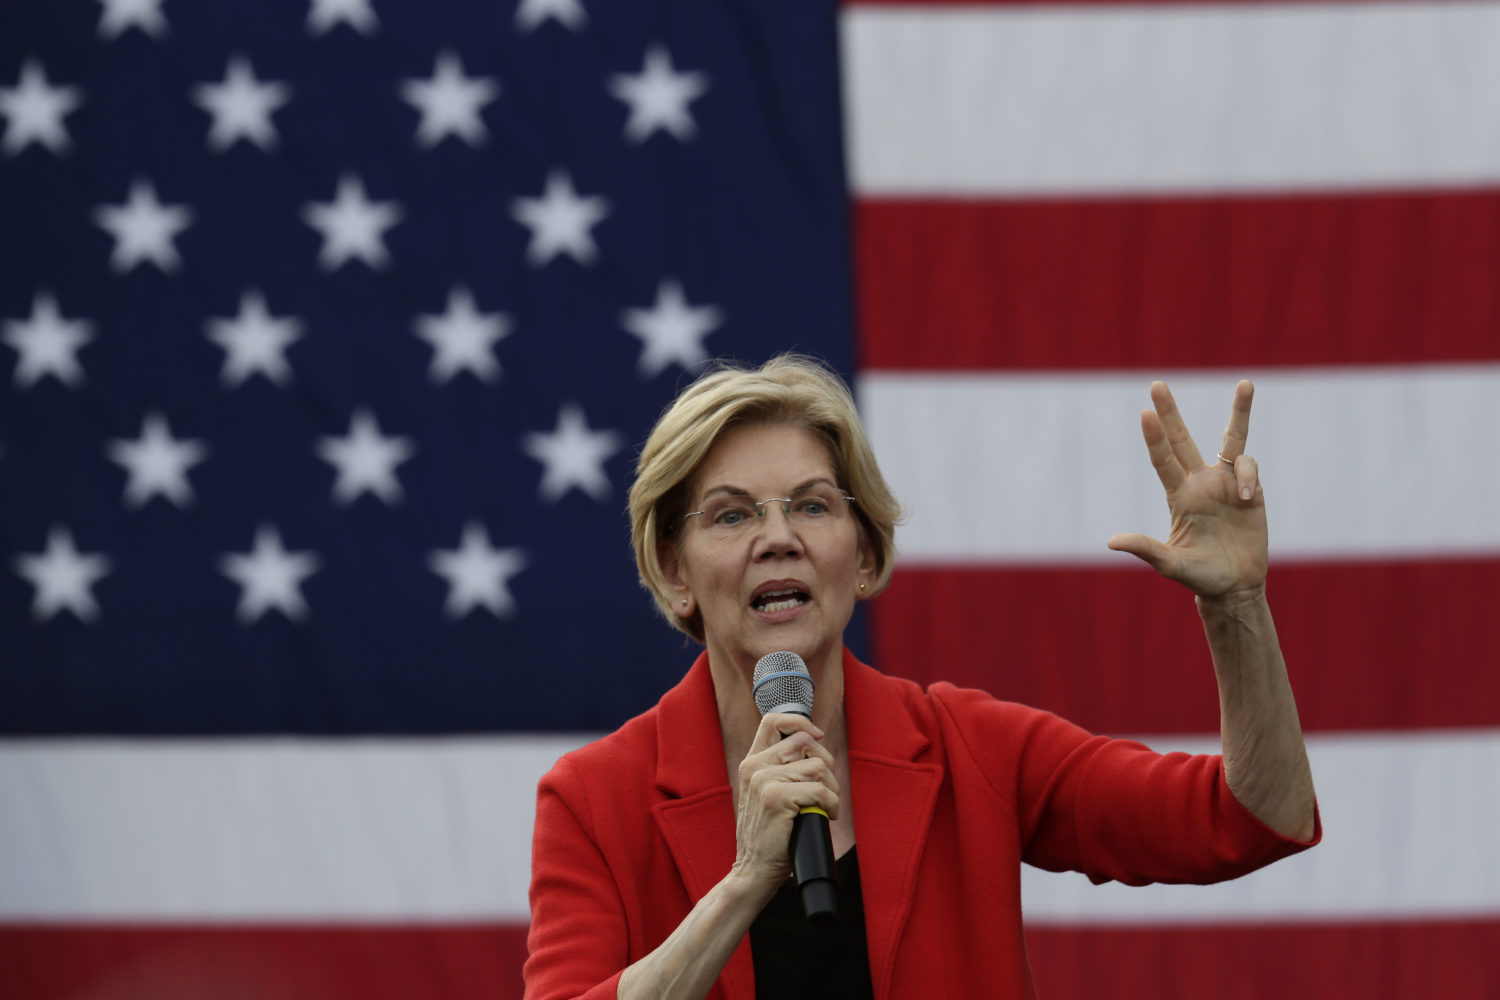 Democratic U.S. presidential hopeful Sen. Elizabeth Warren (D-MA) speaks during a campaign town hall at George Mason University May 16, 2019 in Fairfax, Virginia. (Alex Wong/Getty Images)